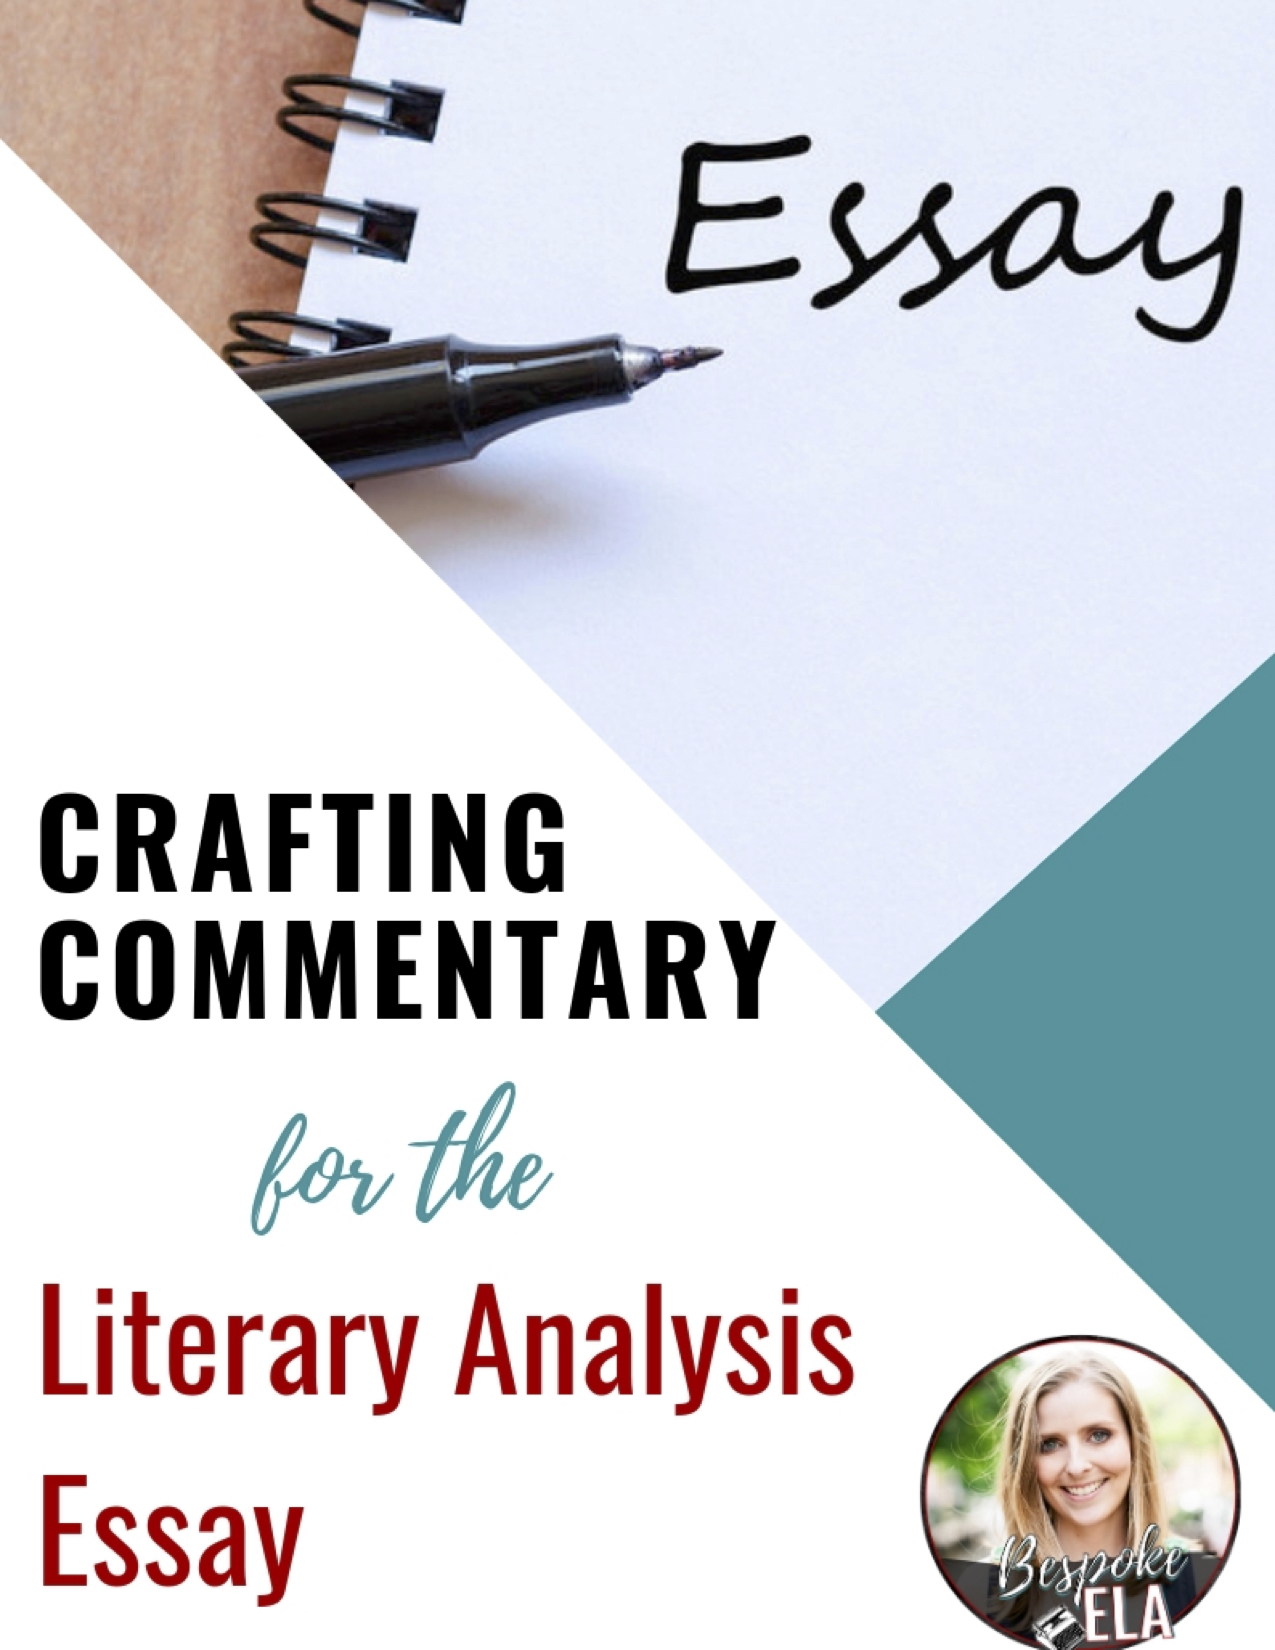 Crafting Commentary Bundle by Bespoke ELA1.jpg